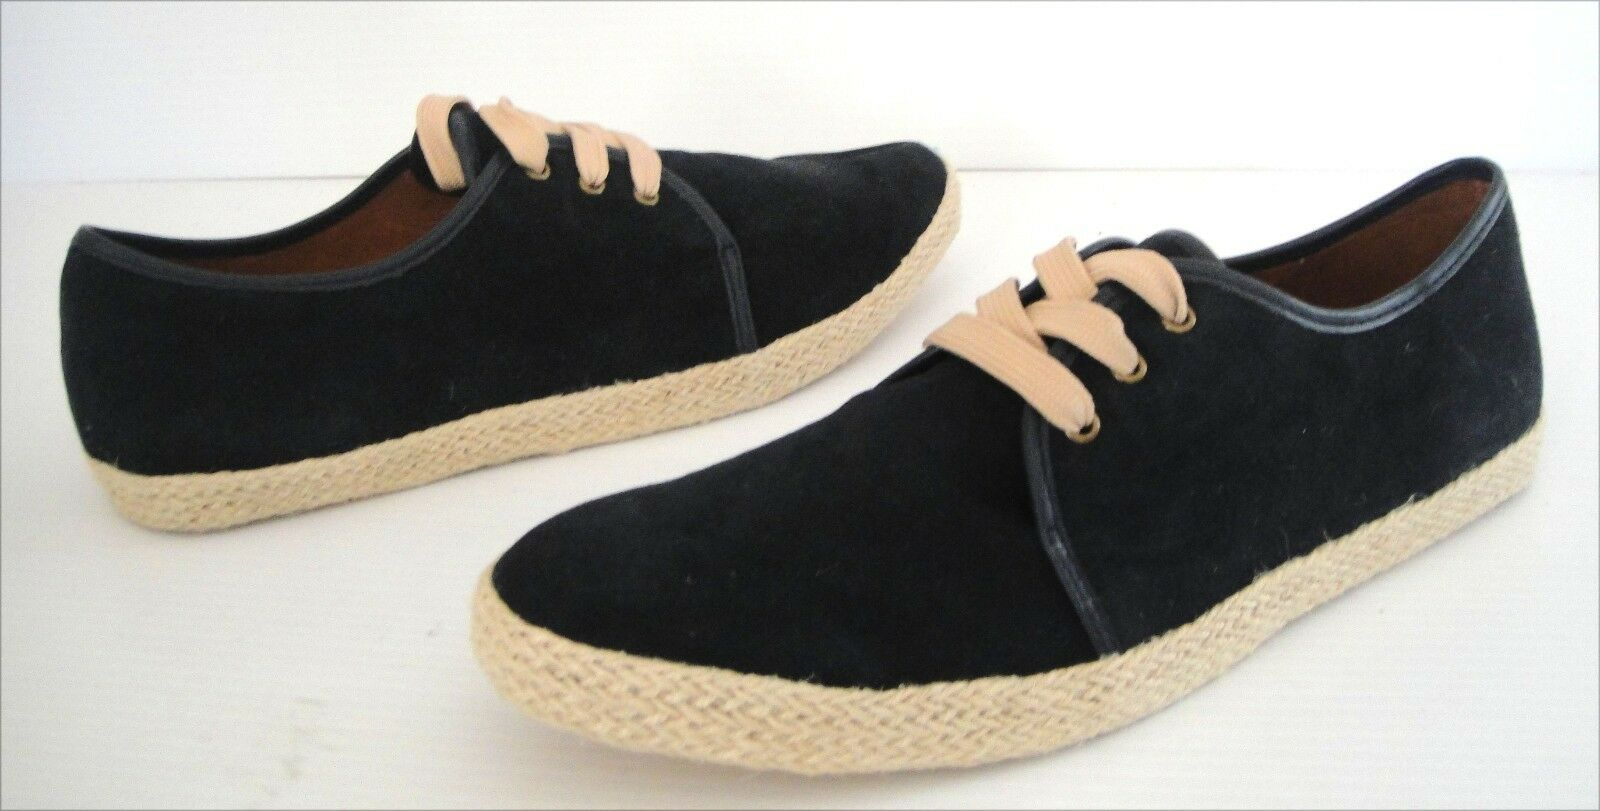 New Scott James  theo men's suede shoes  size  US 9